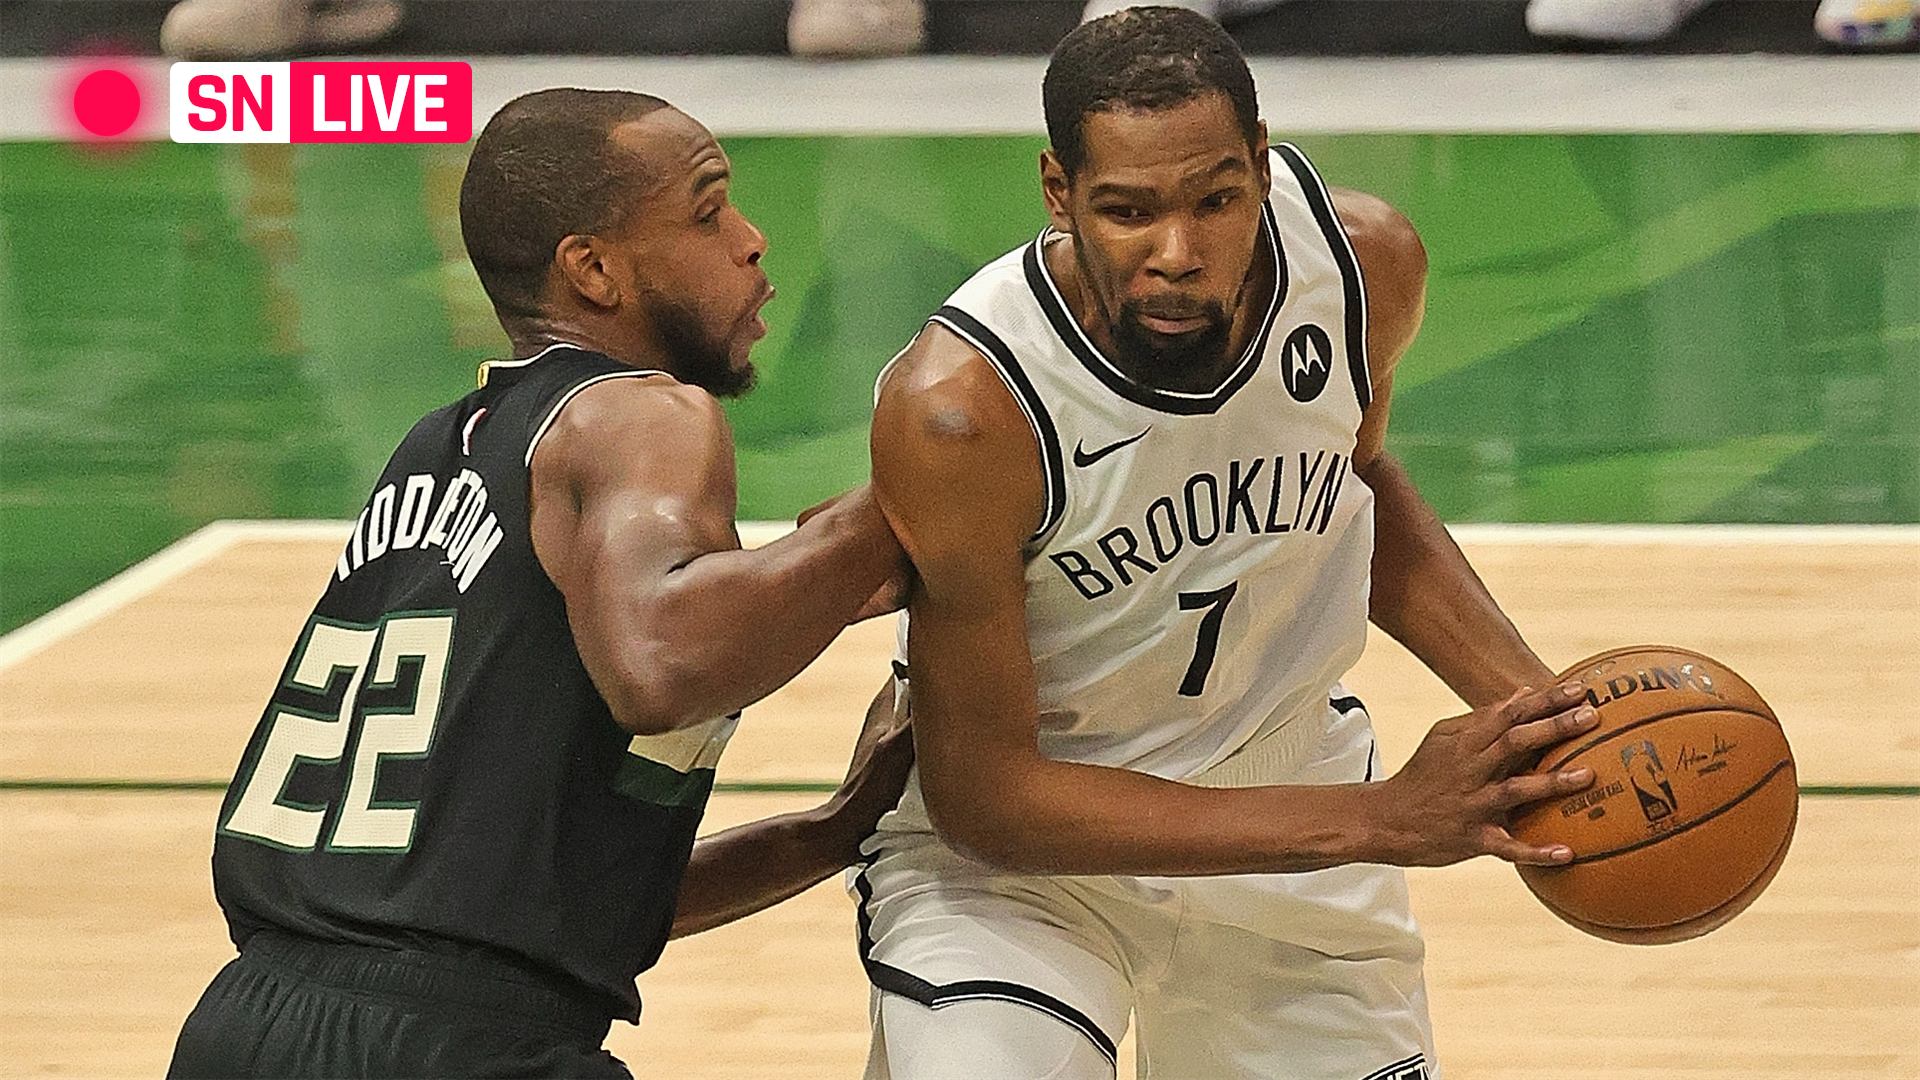 Nets vs. Bucks live score, updates, highlights from Game 7 of NBA playoff series - sporting news